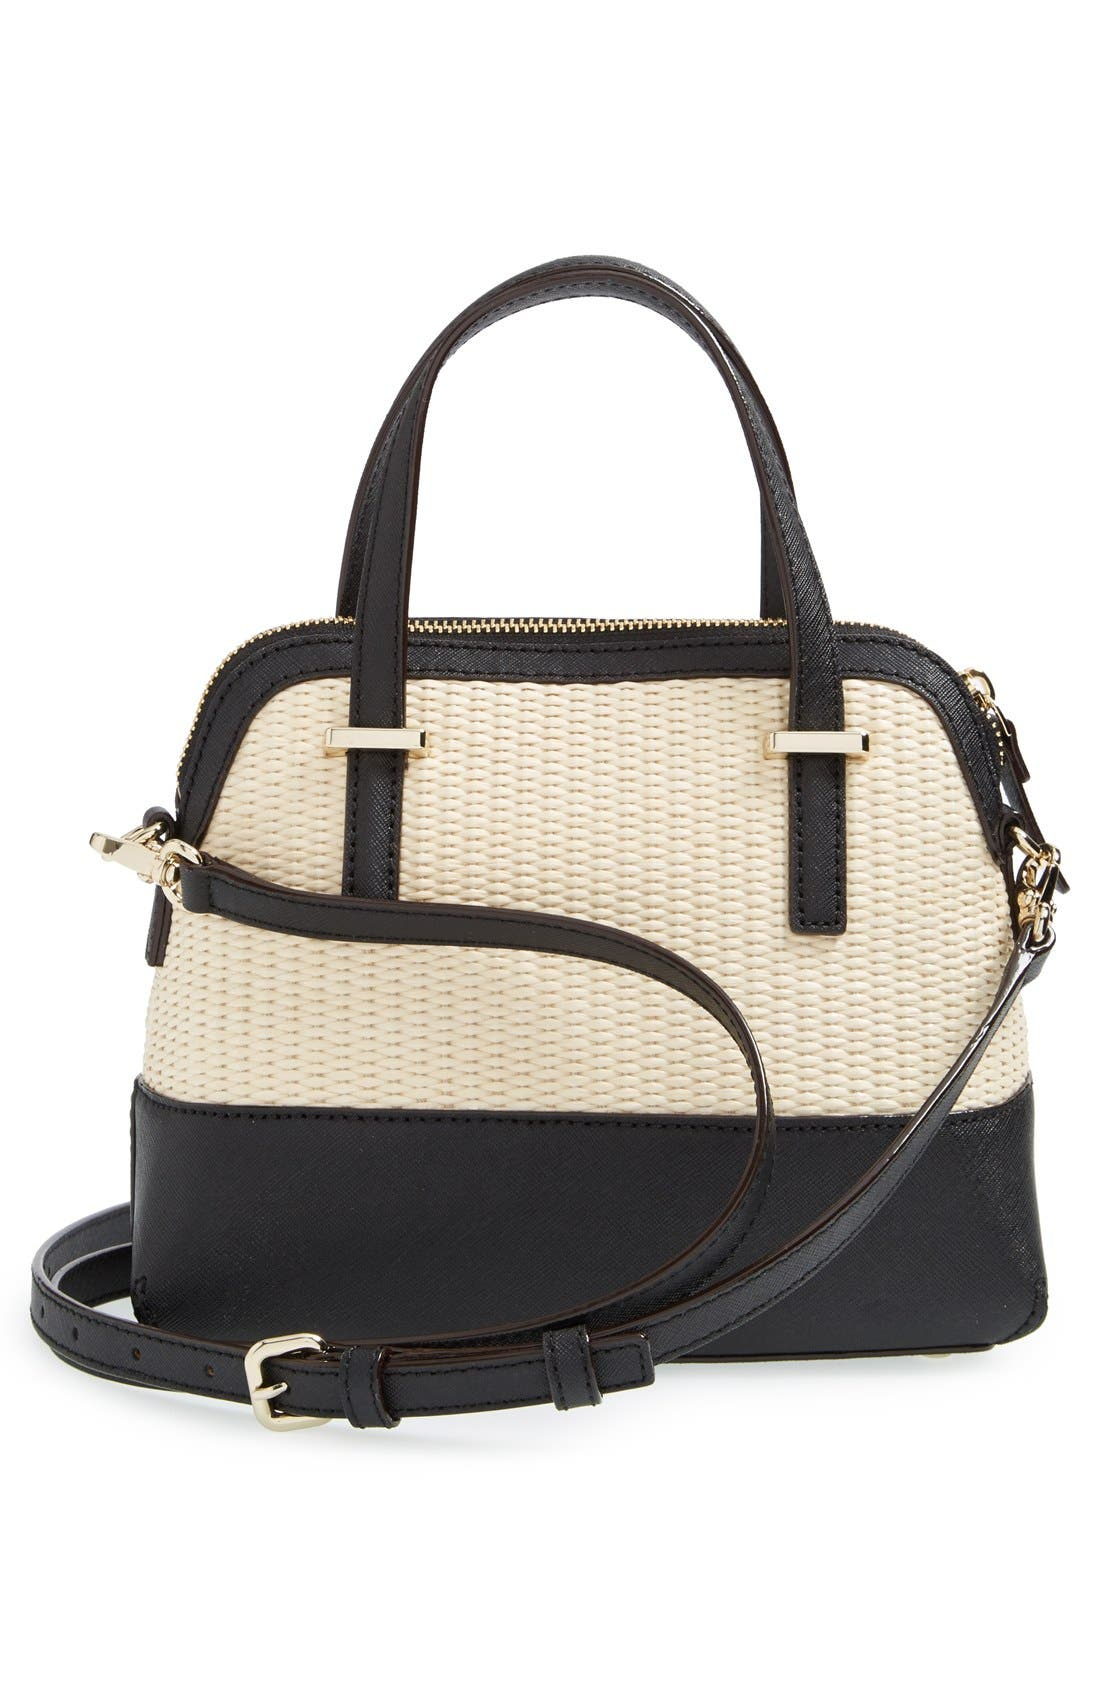 Alternate Image 3  - kate spade new york 'cedar street straw - small maise' satchel